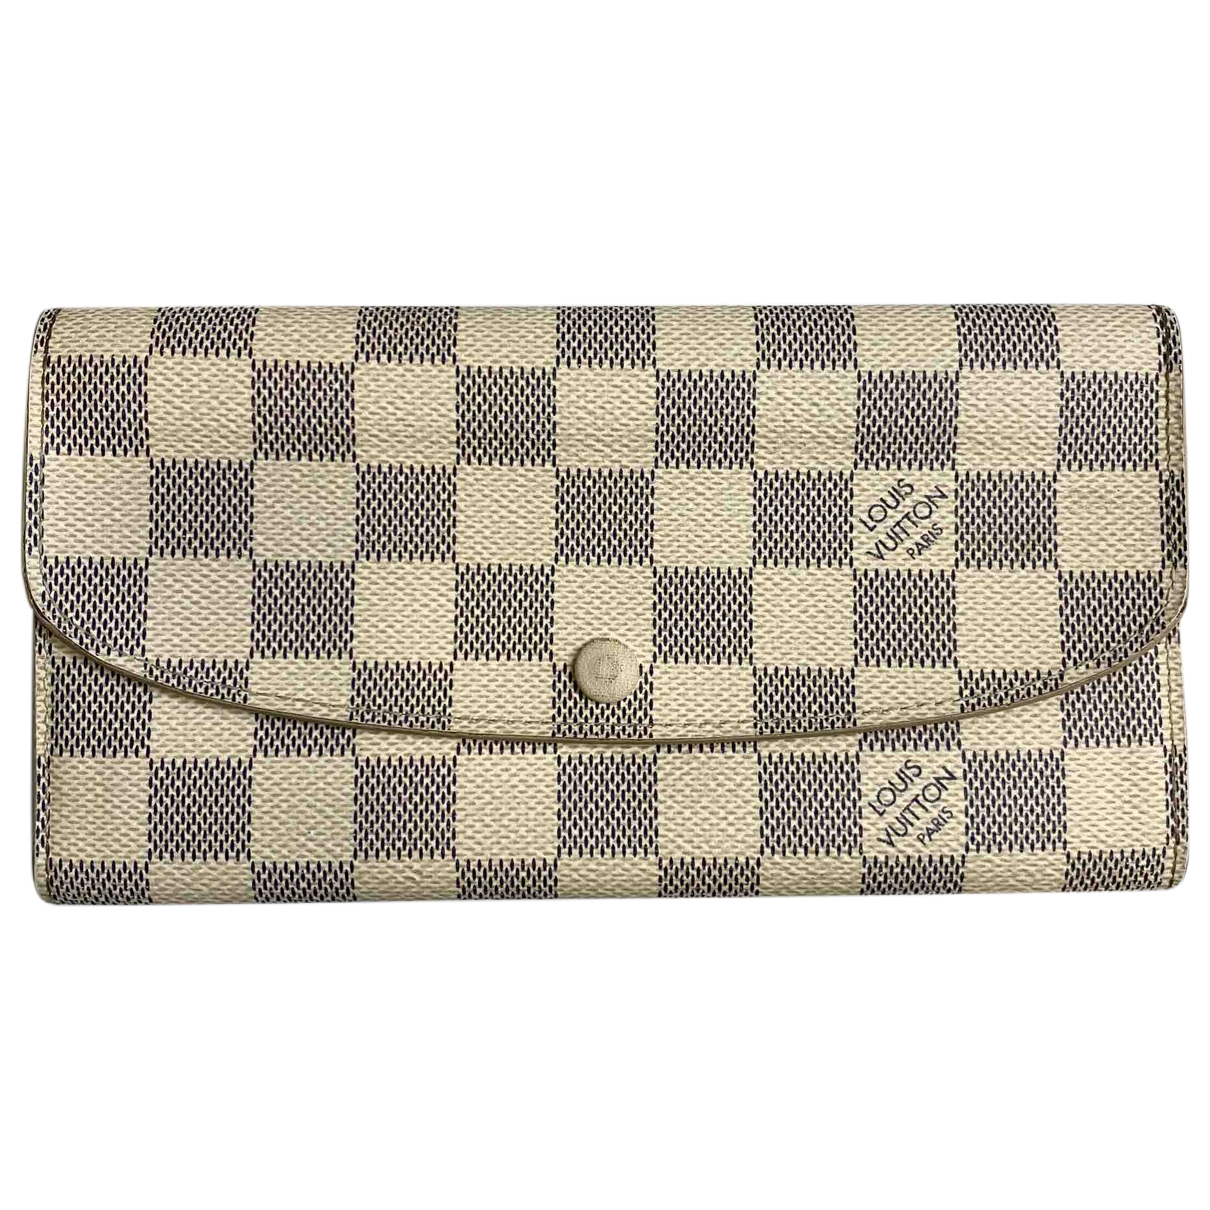 Louis Vuitton Emilie Beige Cloth wallet for Women \N